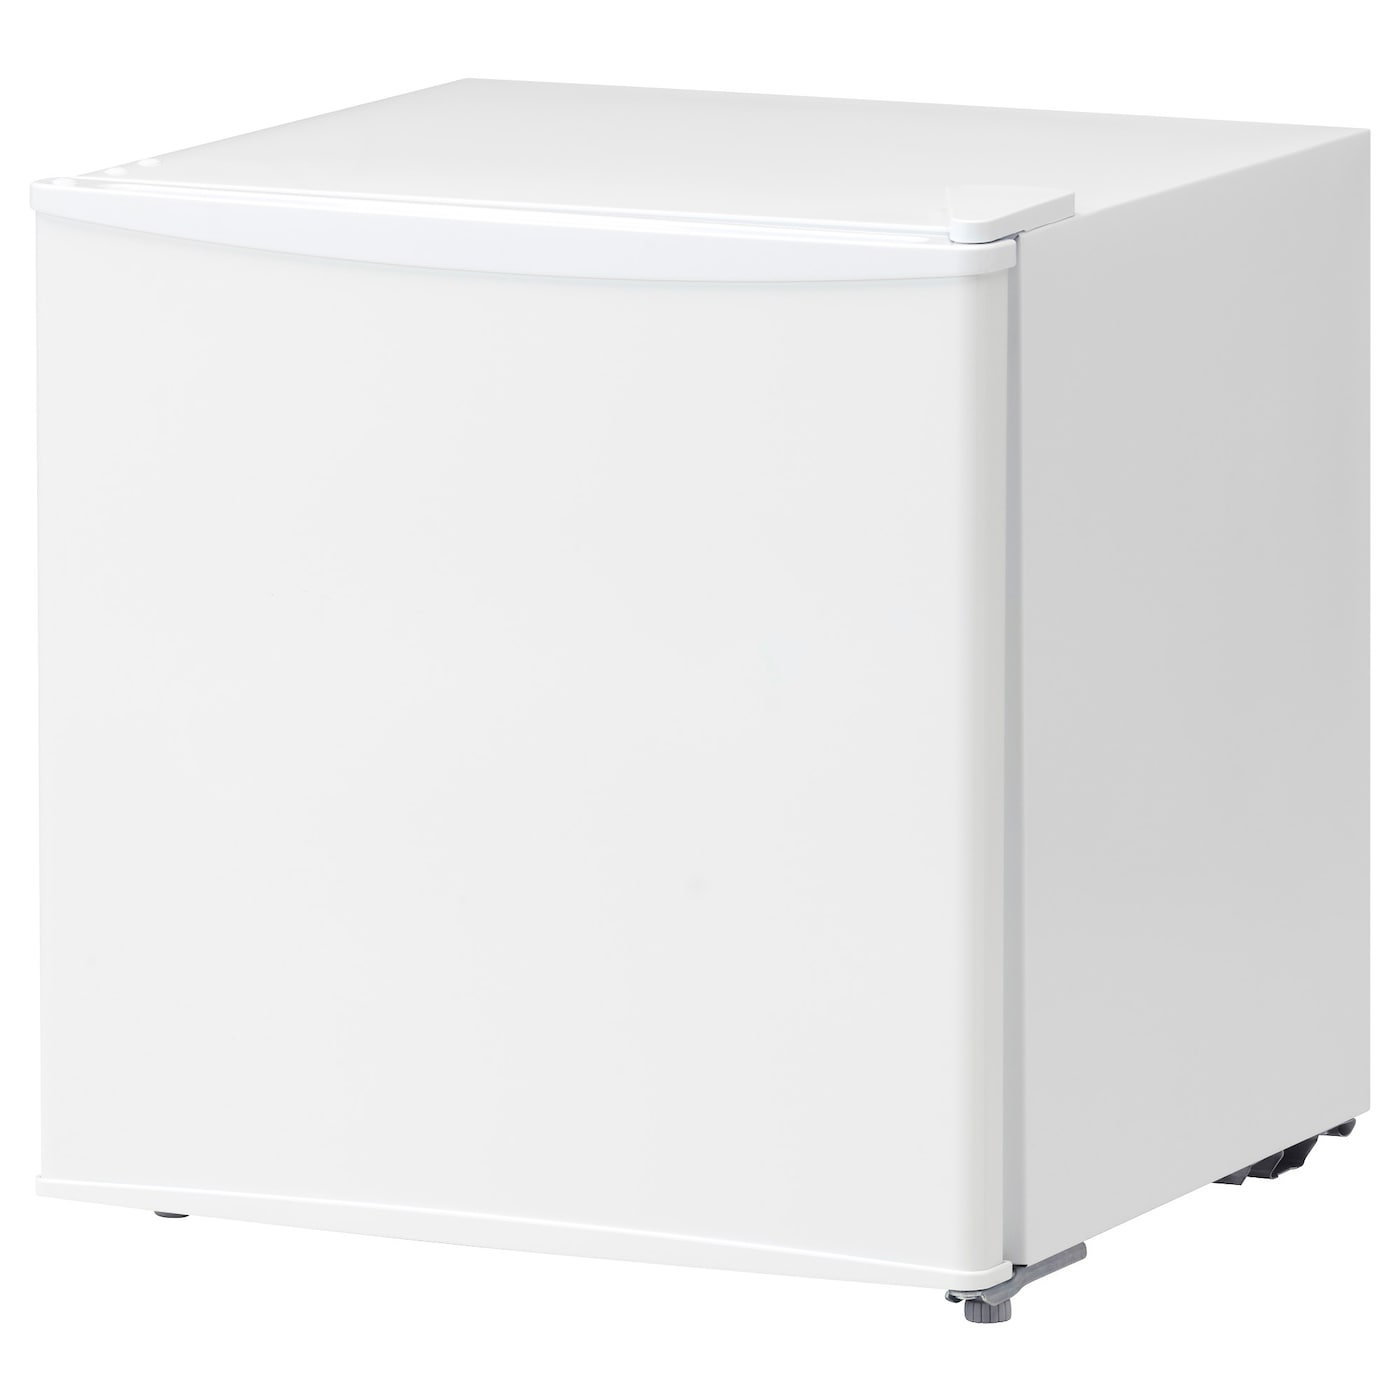 Tillreda fridge a white 45 l ikea - Ikea kitchenette frigo ...